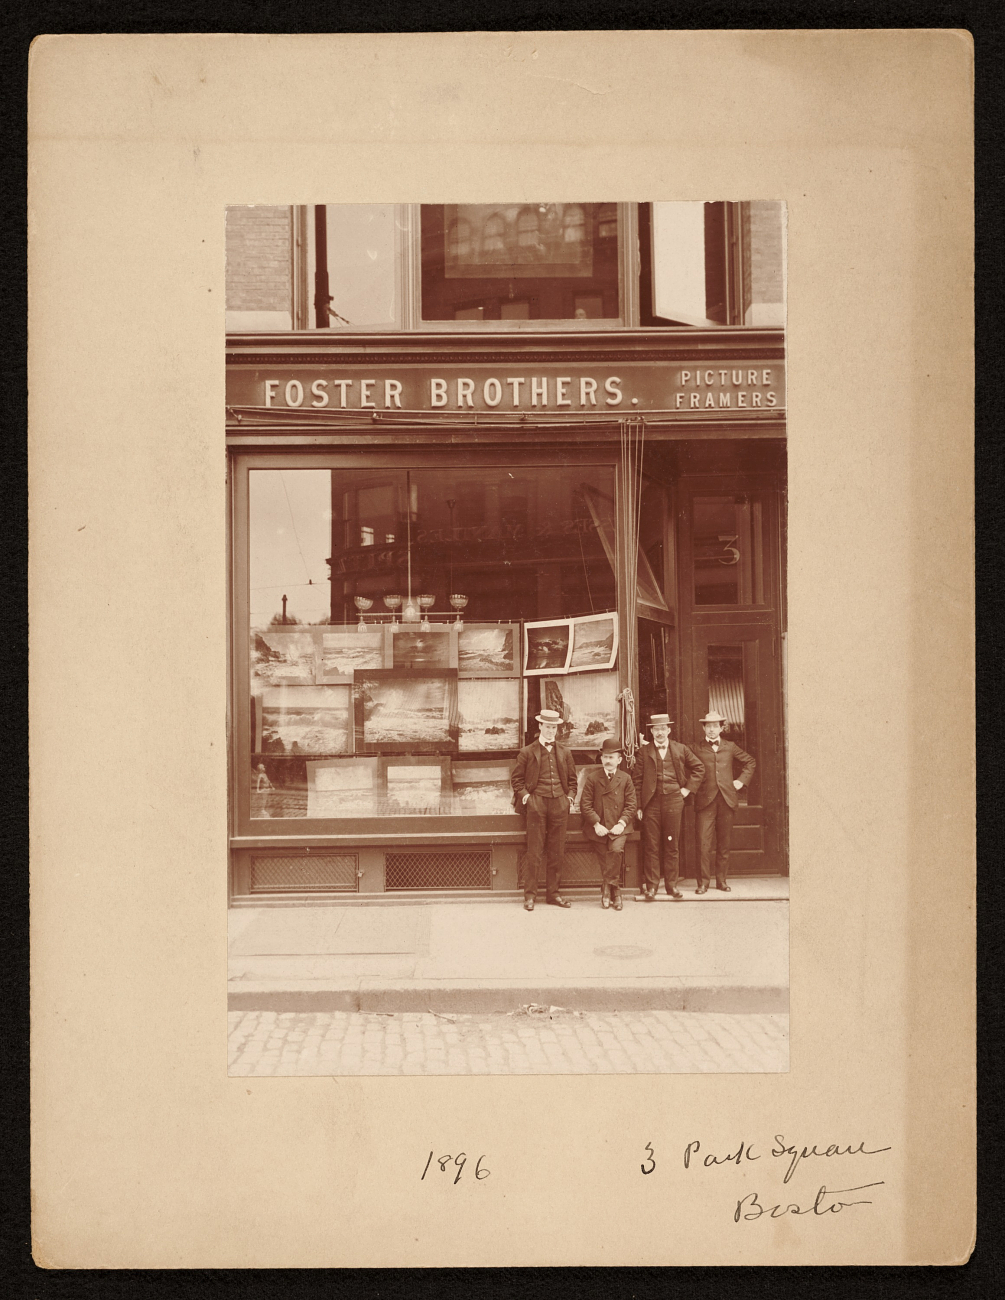 Foster-Brothers-Picture-Frames-Storefront